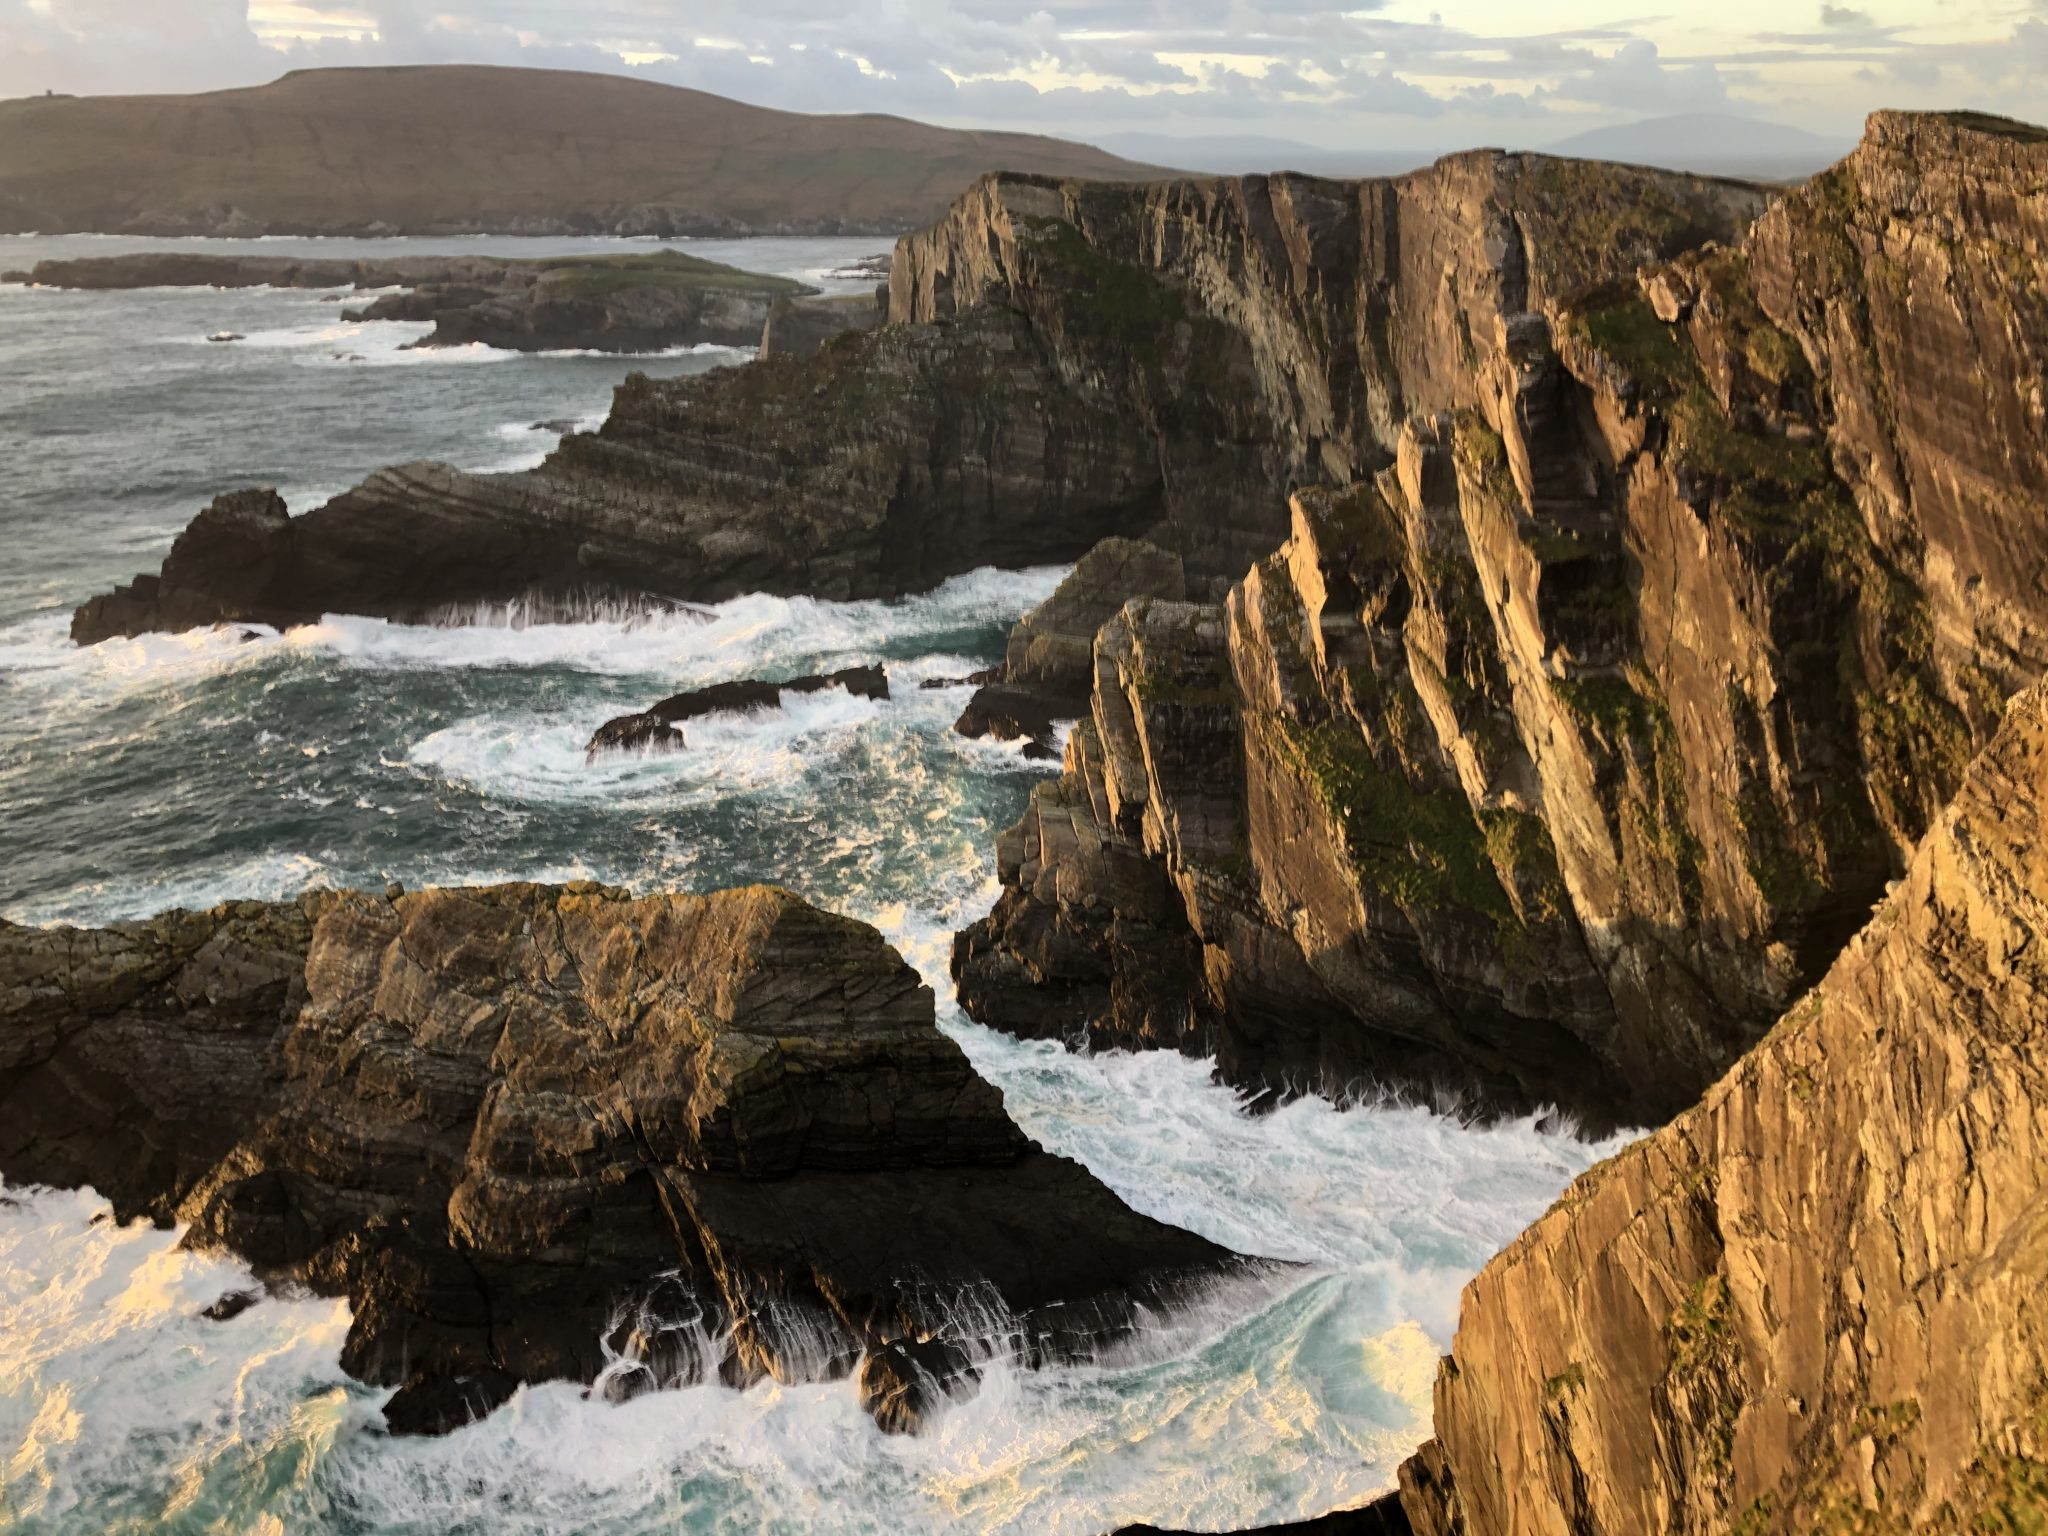 Kerry's most spectacular cliffs, Ring of Kerry, Ireland